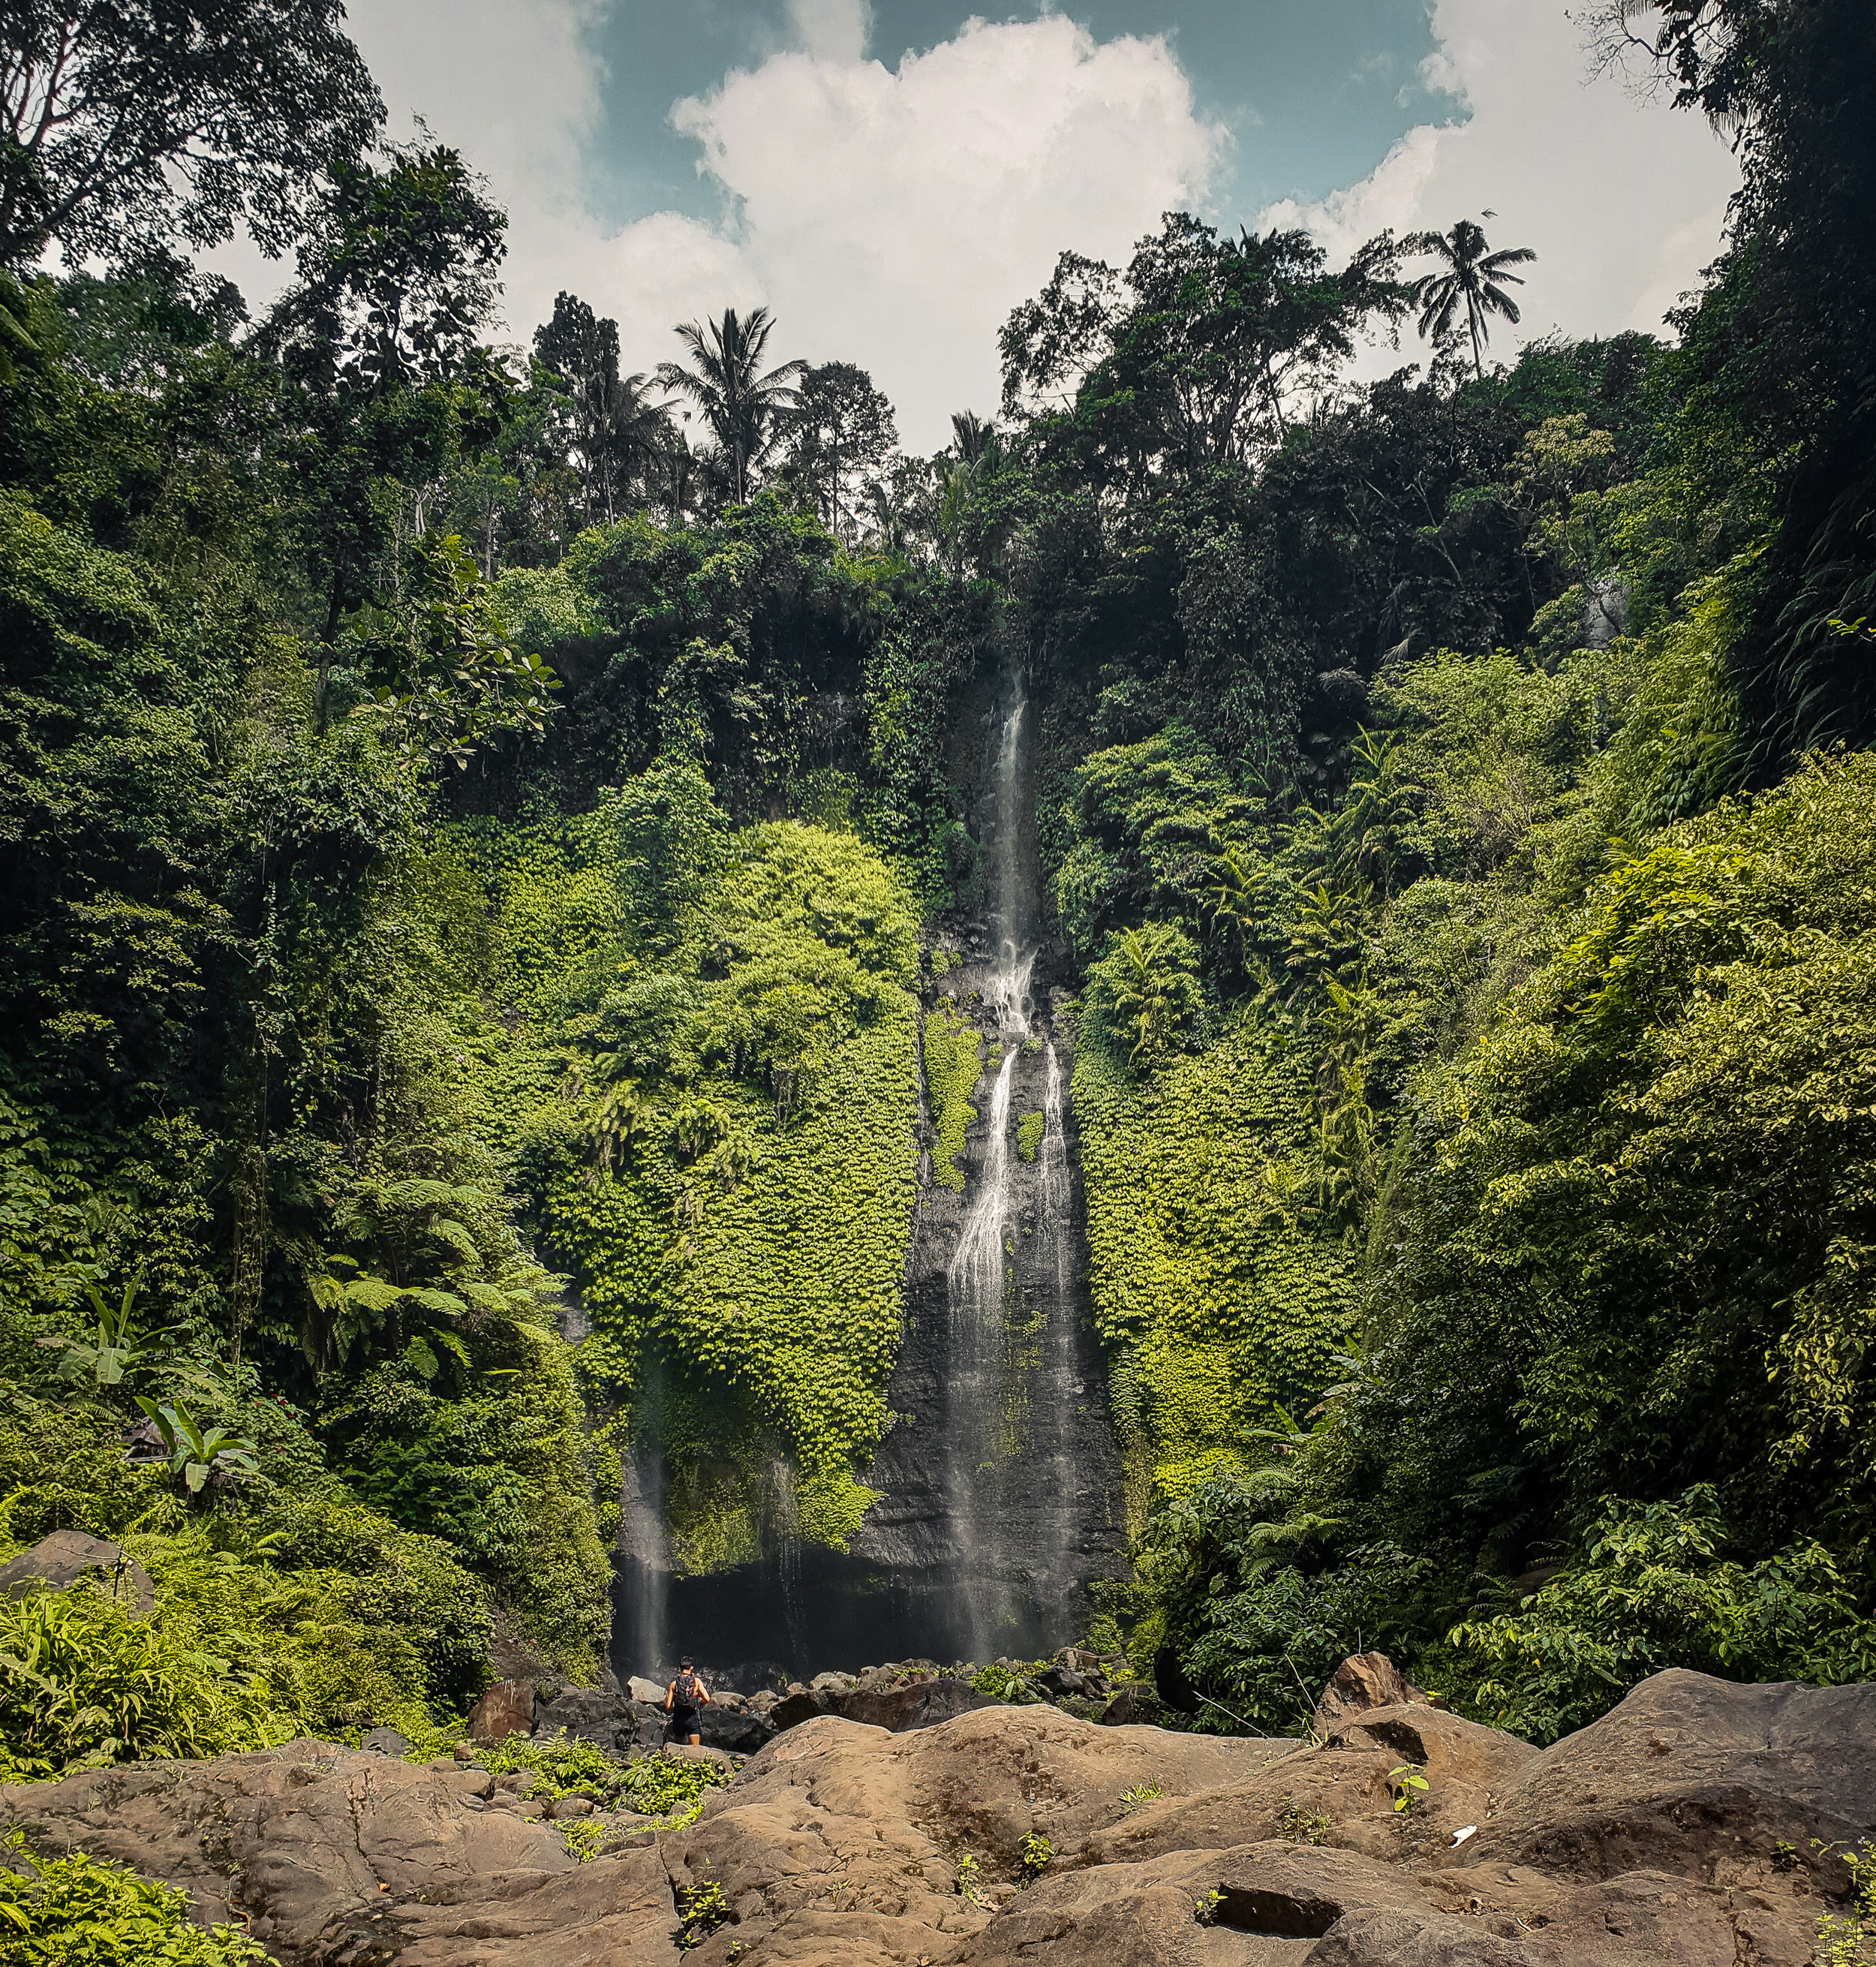 Fiji waterfall - Fiji waterfalls also known as Triple waterfall or Lemukih waterfall, Lemukih Waterfall is very unique because it consists of three waterfalls. Waterfall on the far right is the most high, with a height of about 50 meters. The highest waterfall is accompanied by two small waterfall on the left side. Under the highest waterfall, there is a pool that is wide enough and you can swim there.